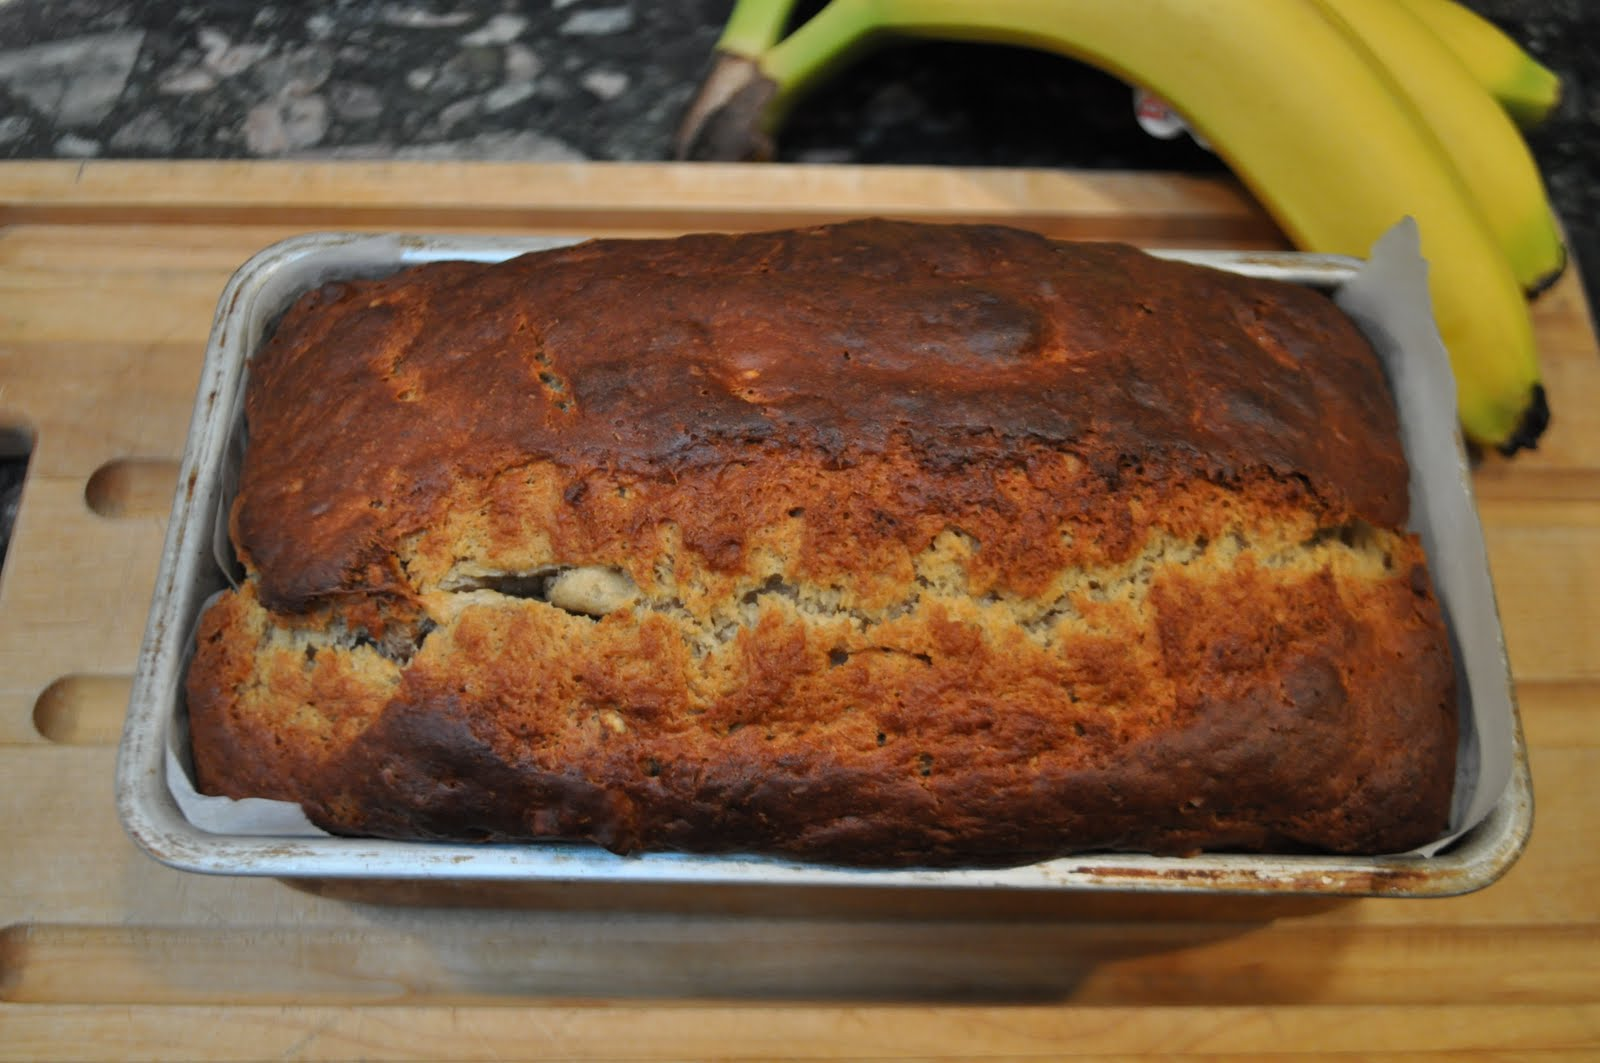 Banana loaf start with an onion bake at 350 for 45 minutes to one hour until knife inserted in centre comes out clean it may take up to an hour and a half depending on your oven forumfinder Images